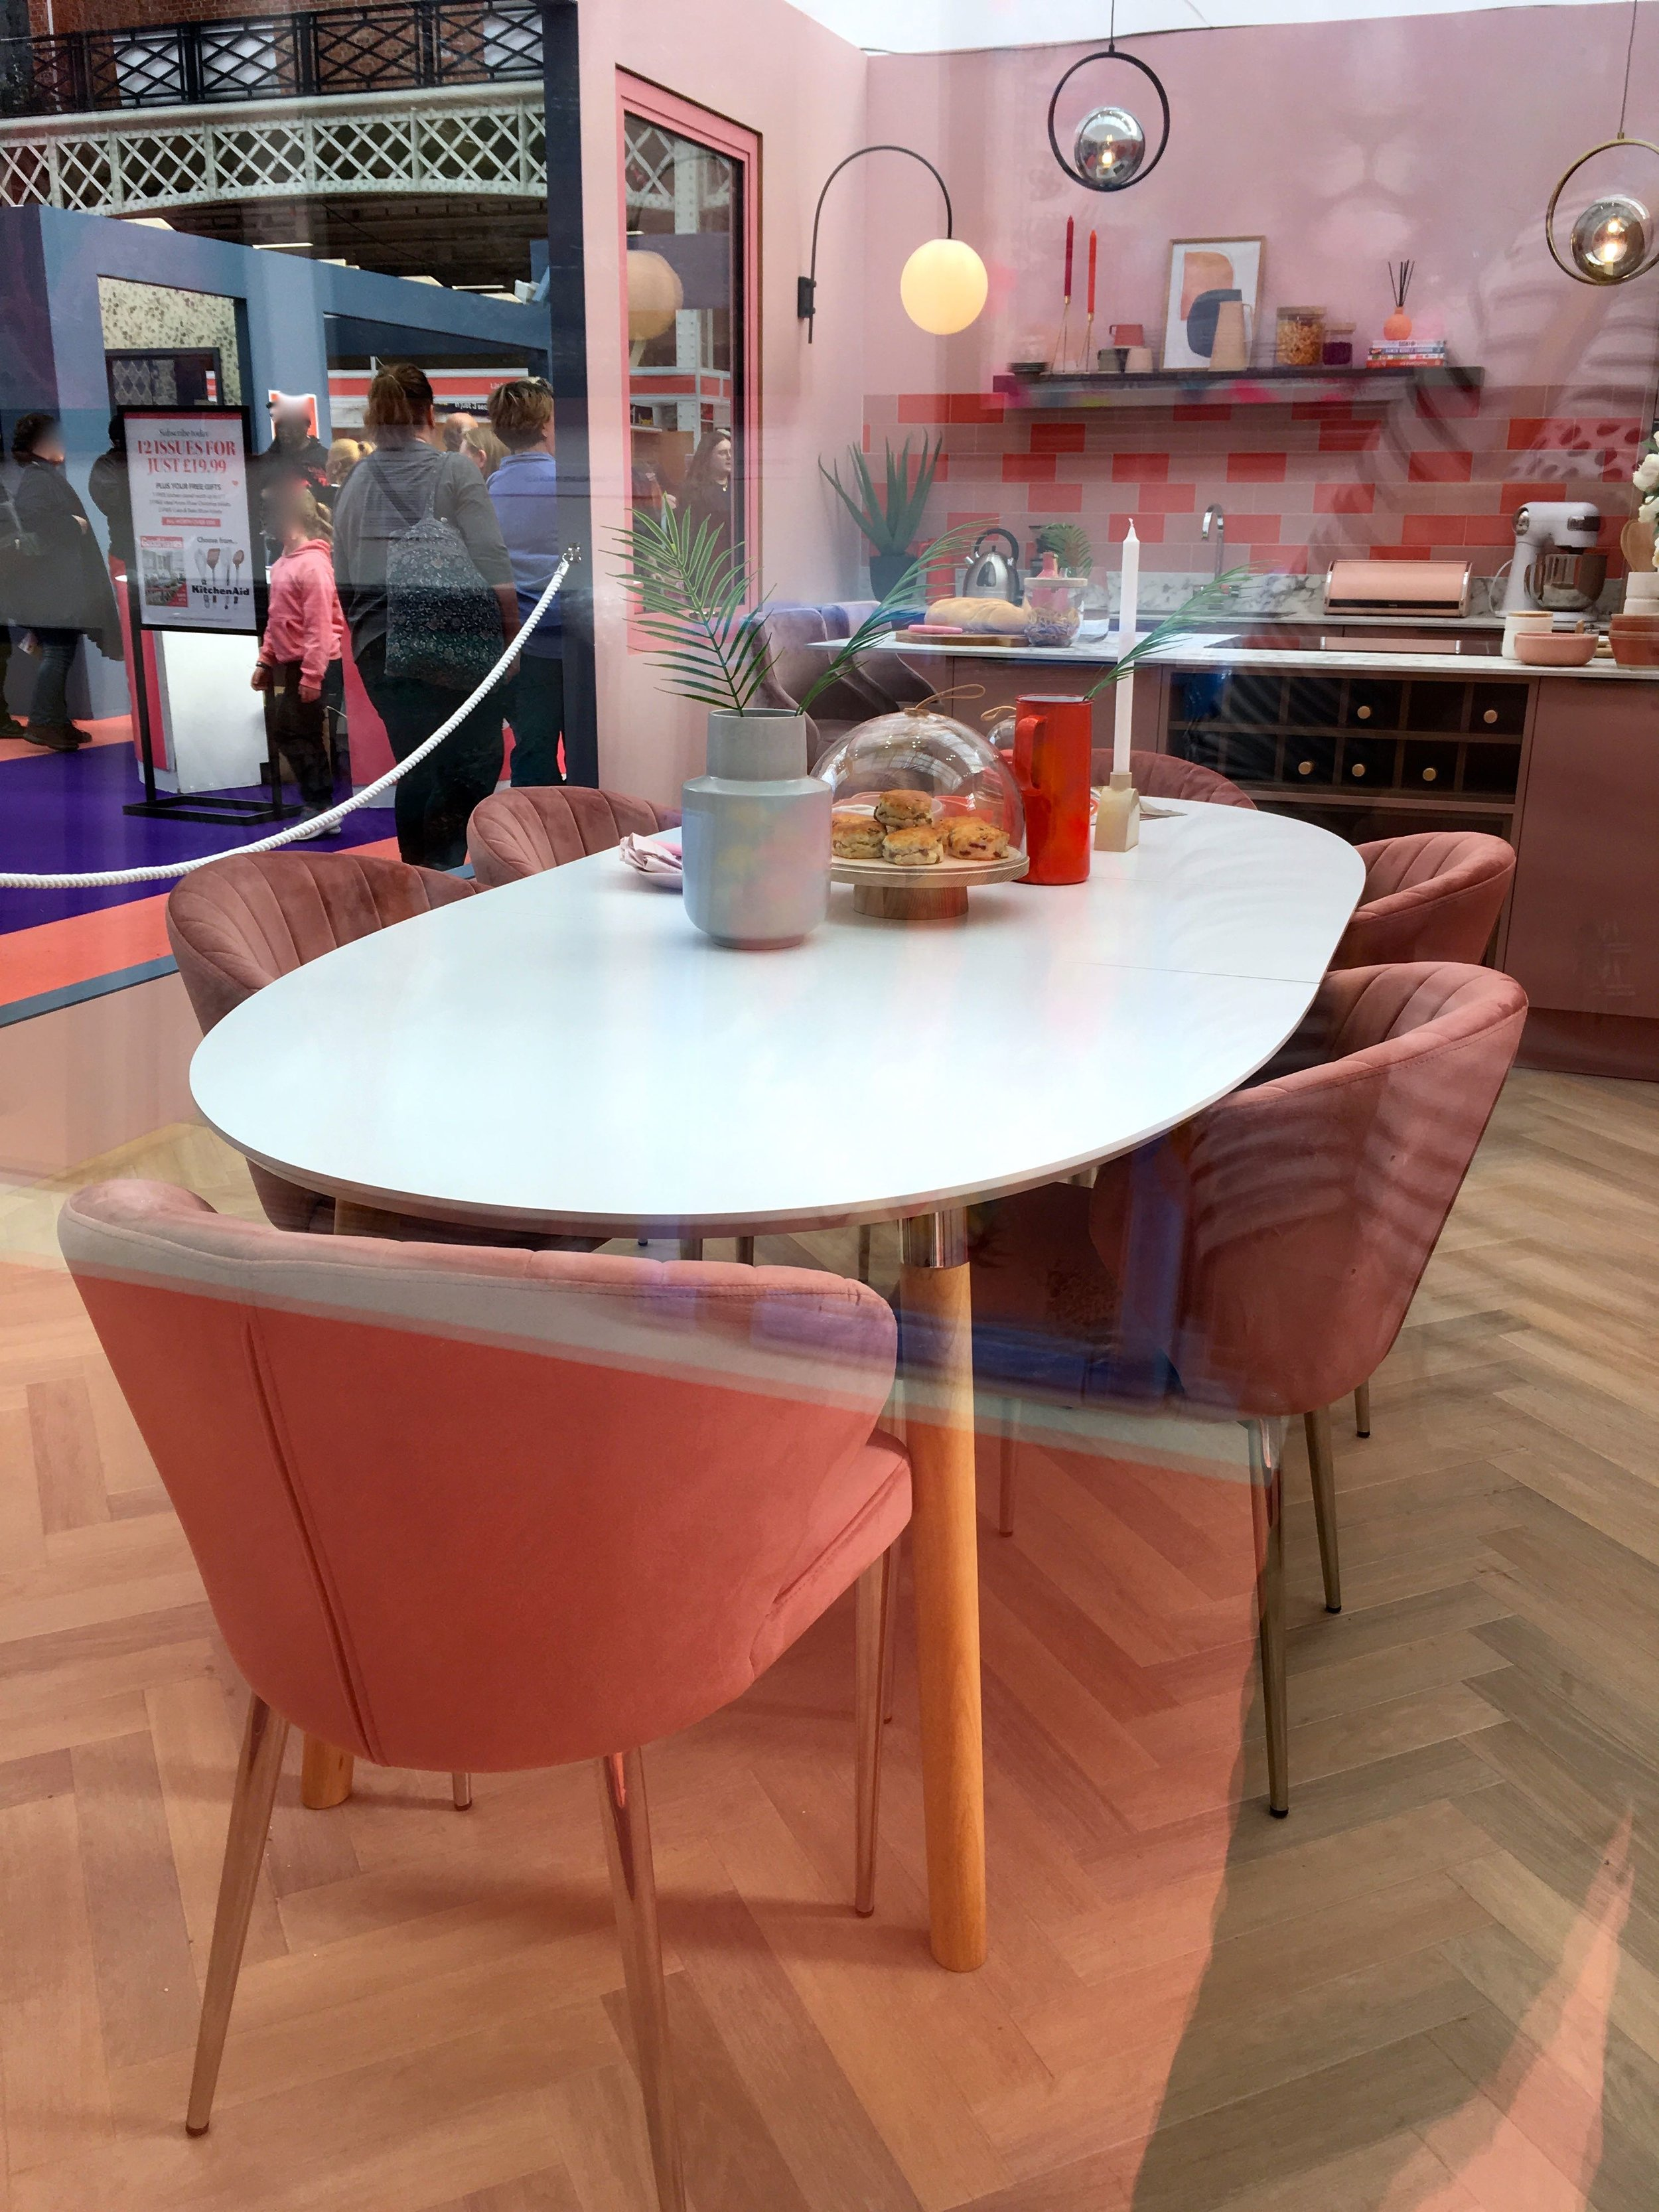 A PINK KITCHEN ROOM SET